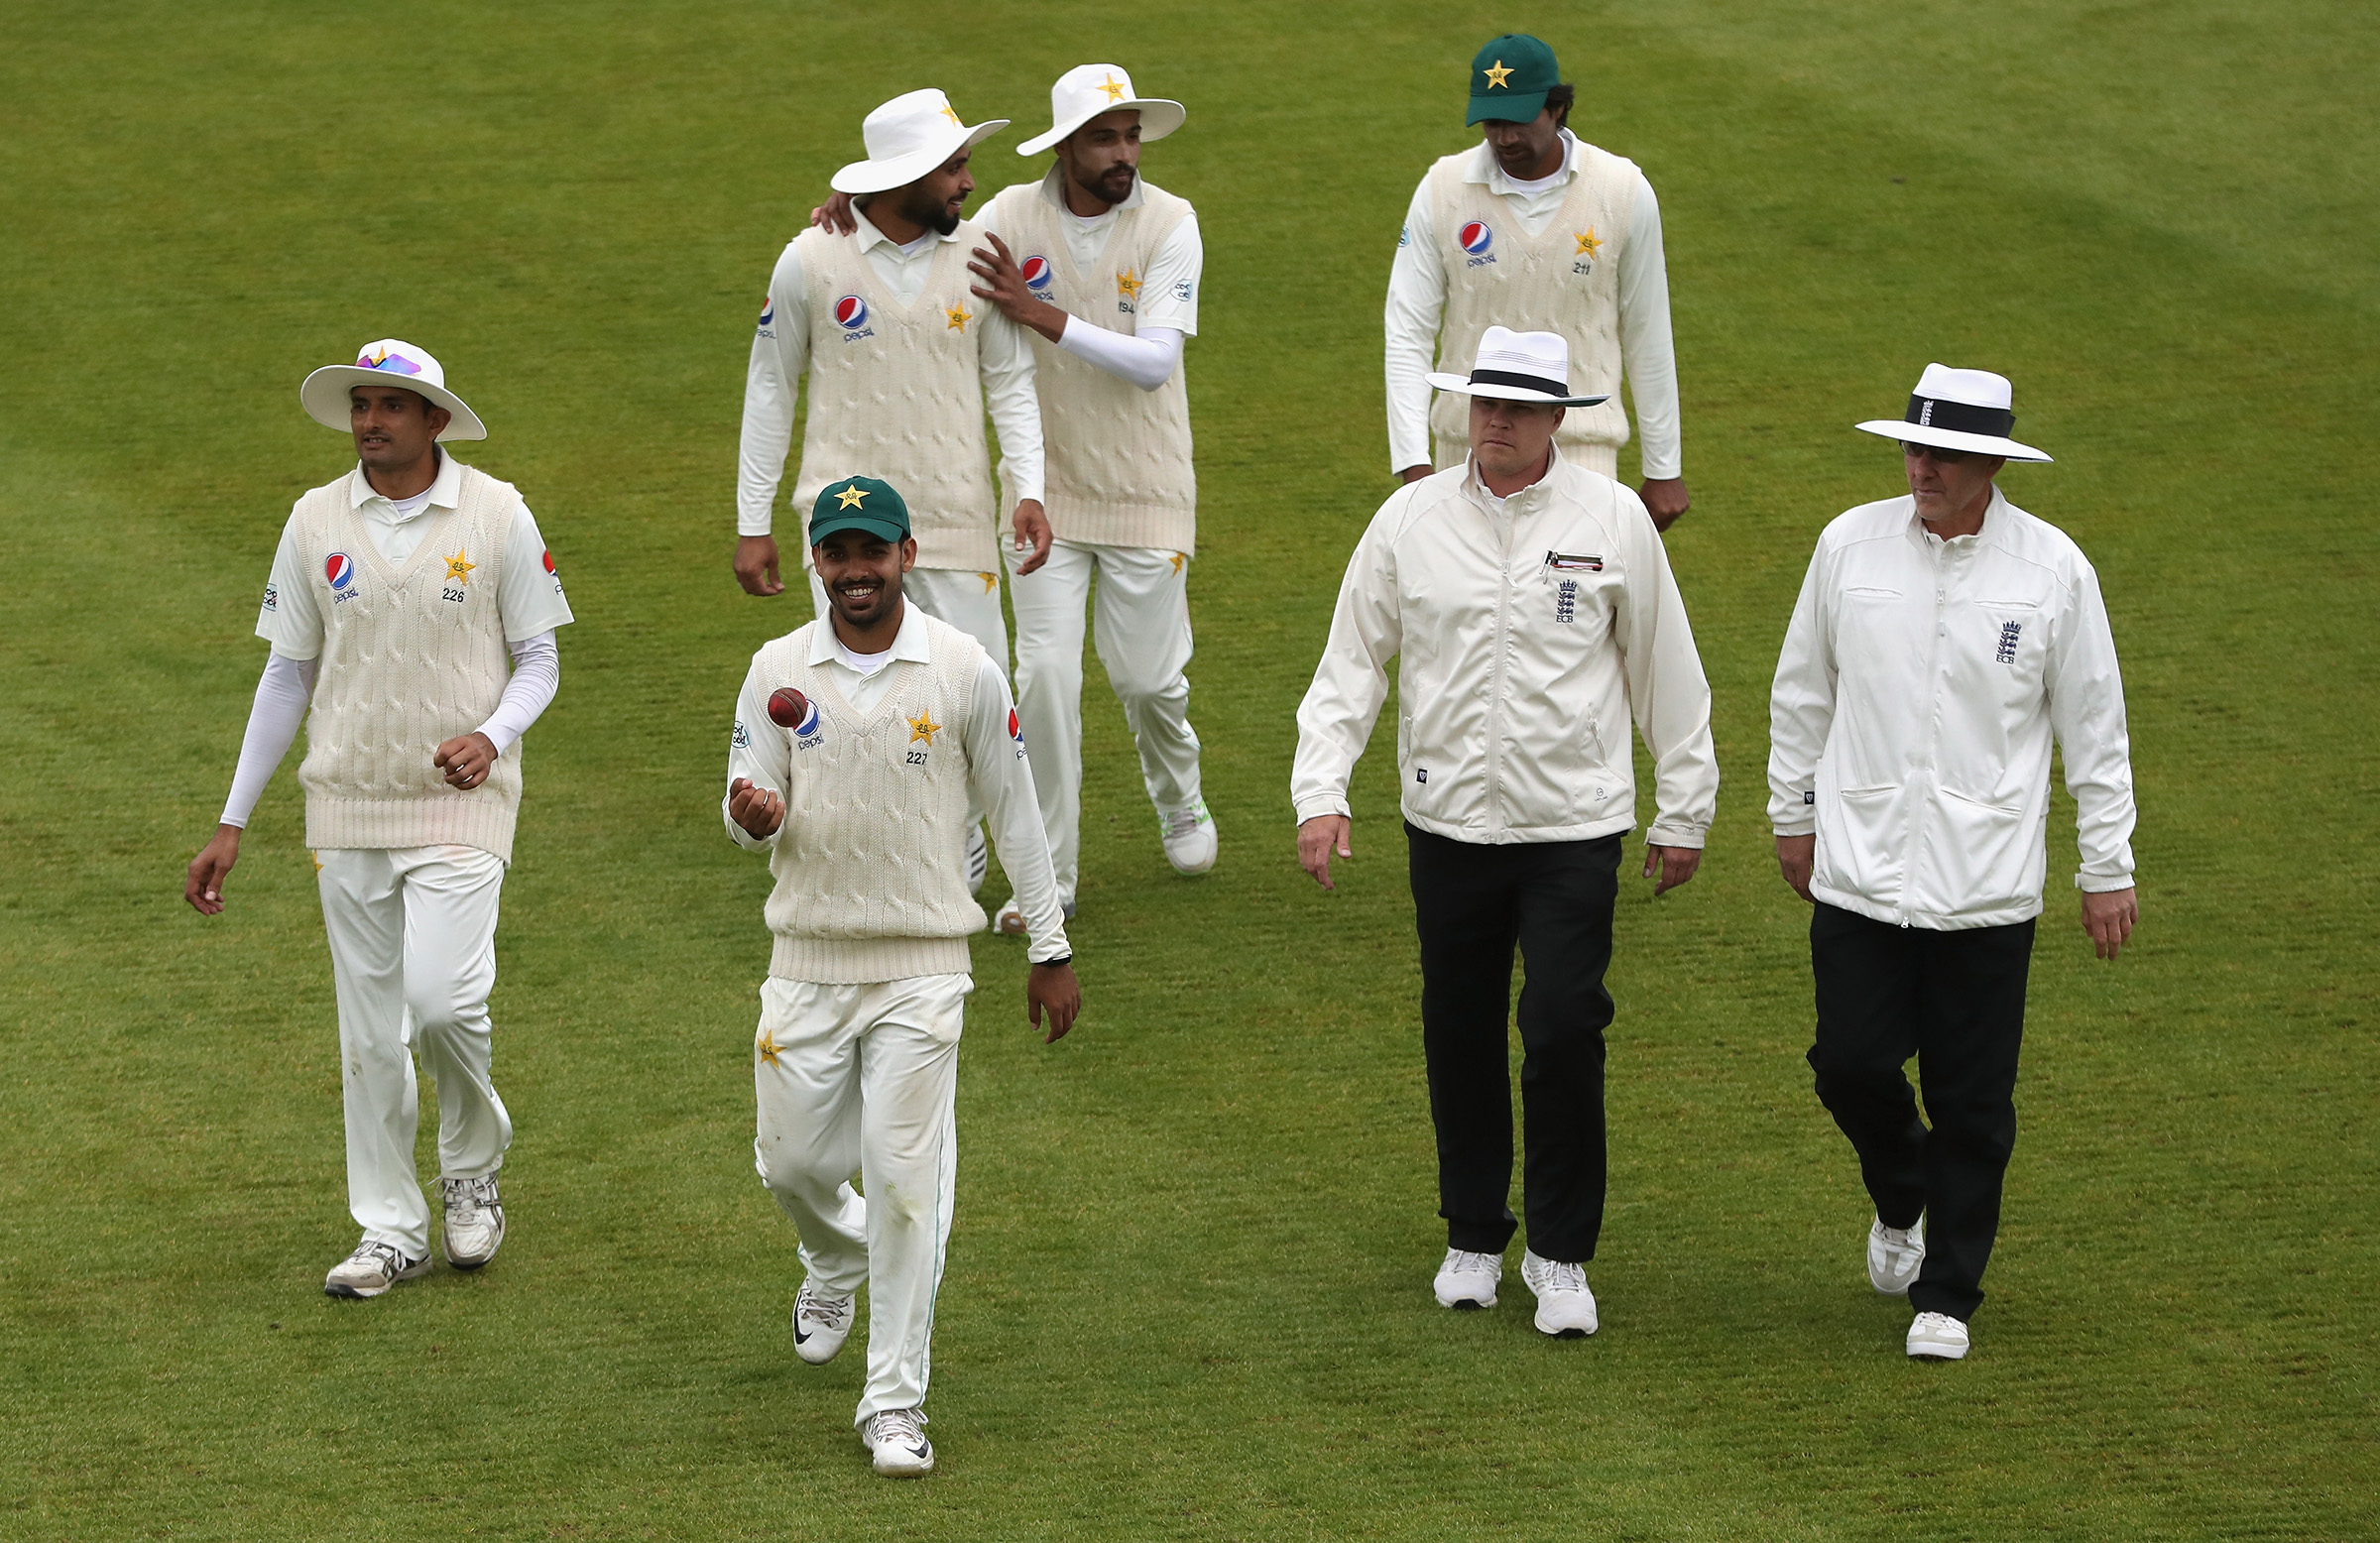 Shadab Khan walking out after the career-best bowling spell of 10 for 157 runs vs Northamptonshire